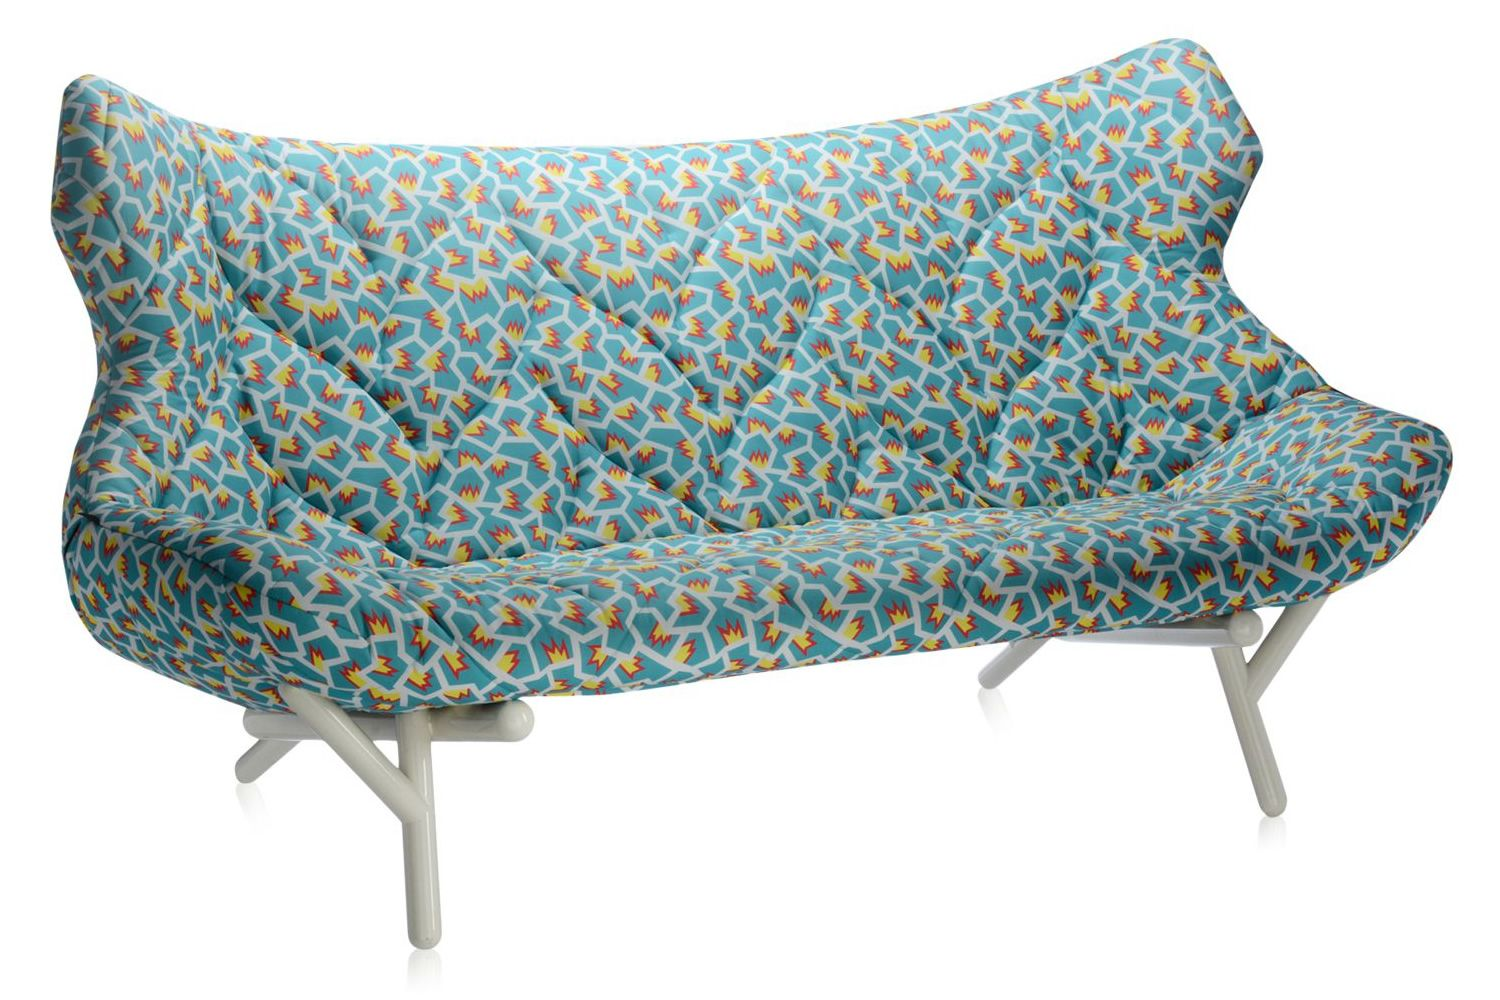 foliage sofa by sottsass  design sofa kartell goes sottsass series  2 seater  with metal frame